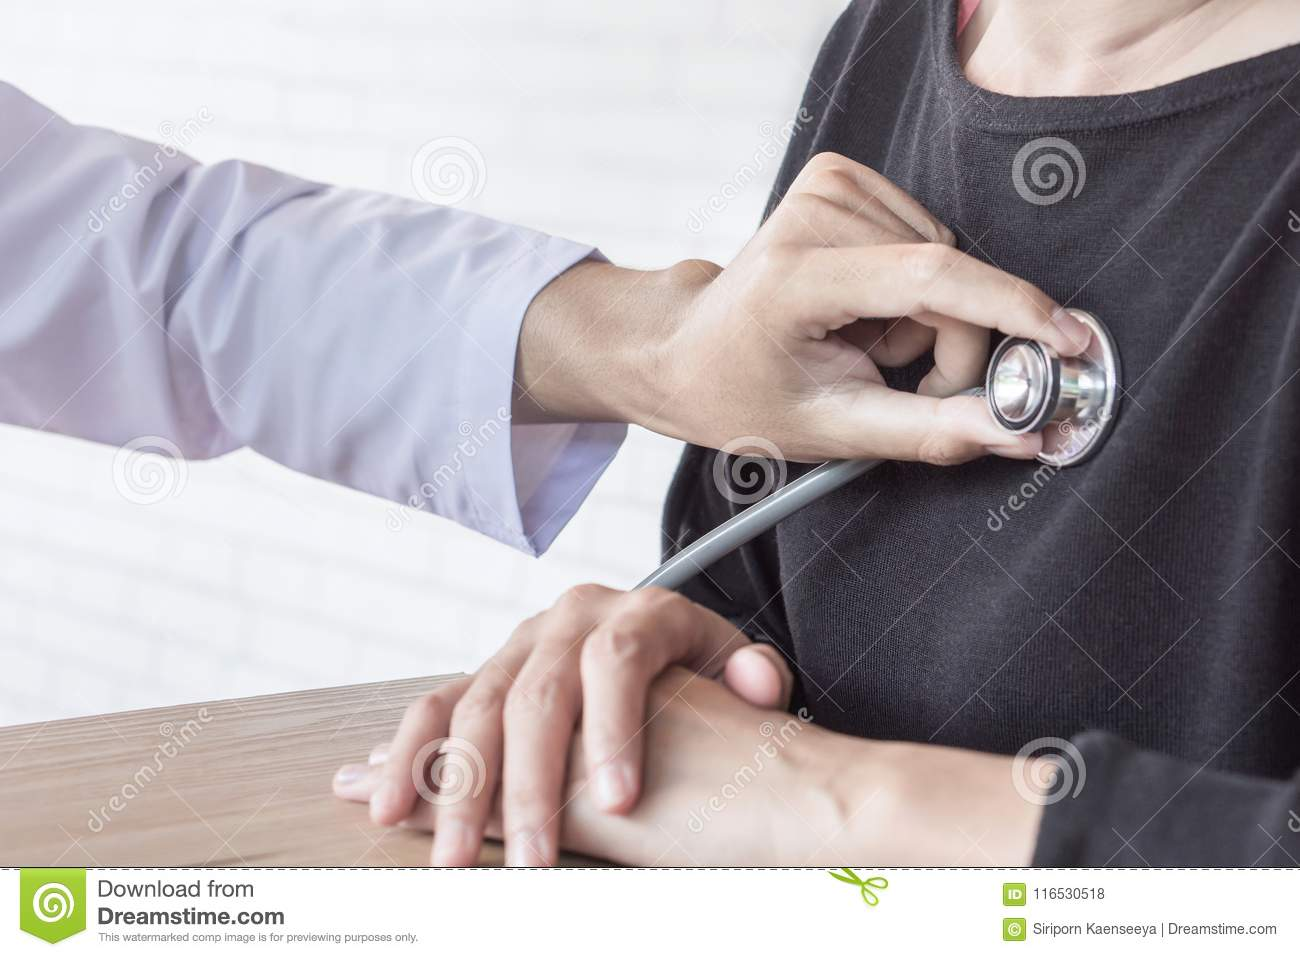 Doctor with stethoscope in hand examining female patient heart beat